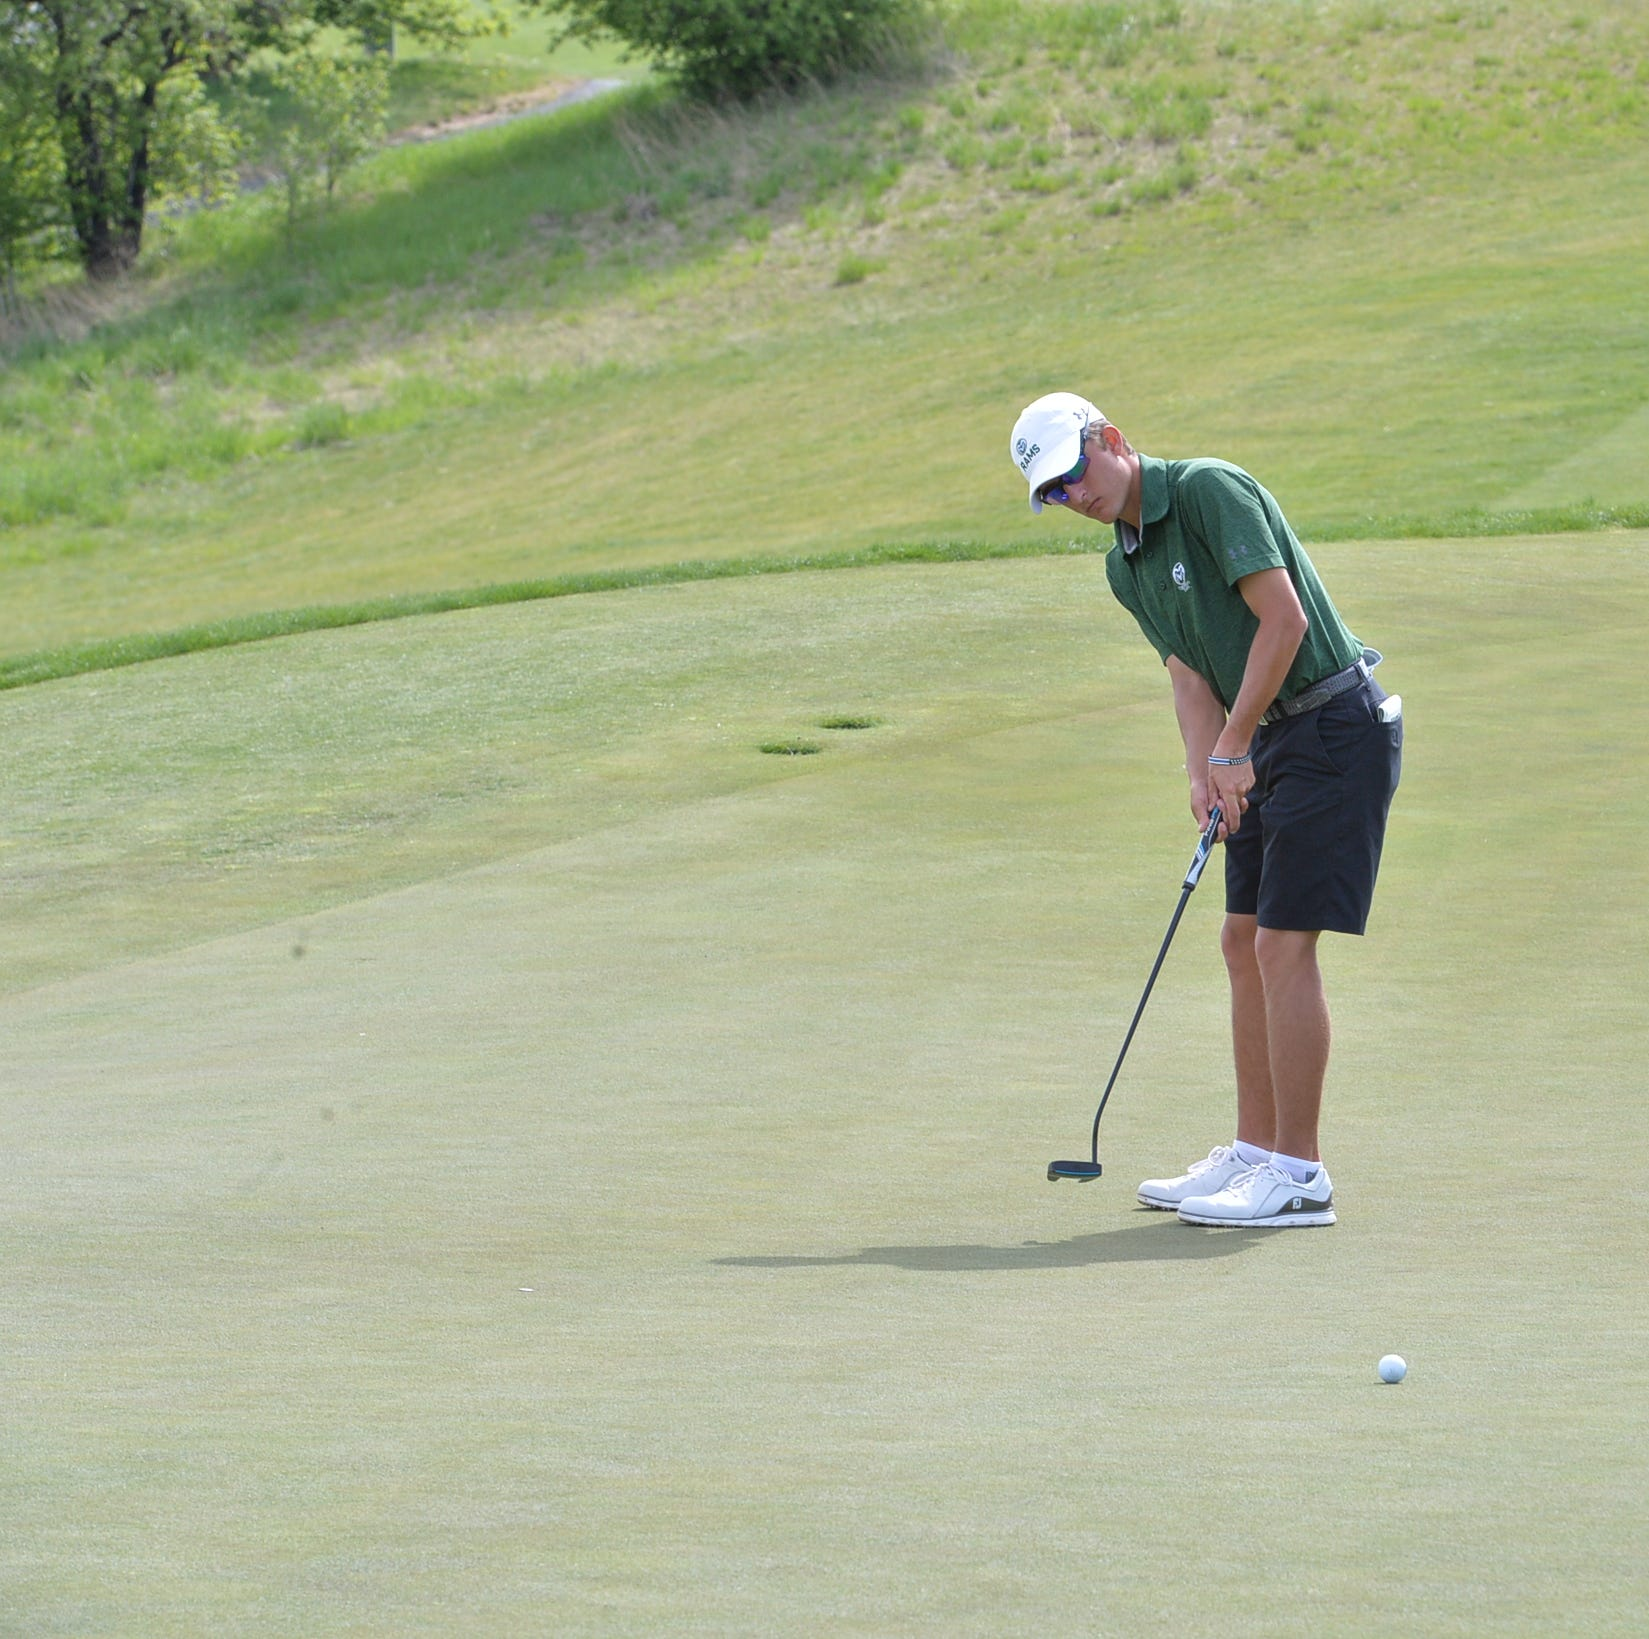 CSU men's golf team drops playoff for final spot in NCAA championships by one stroke